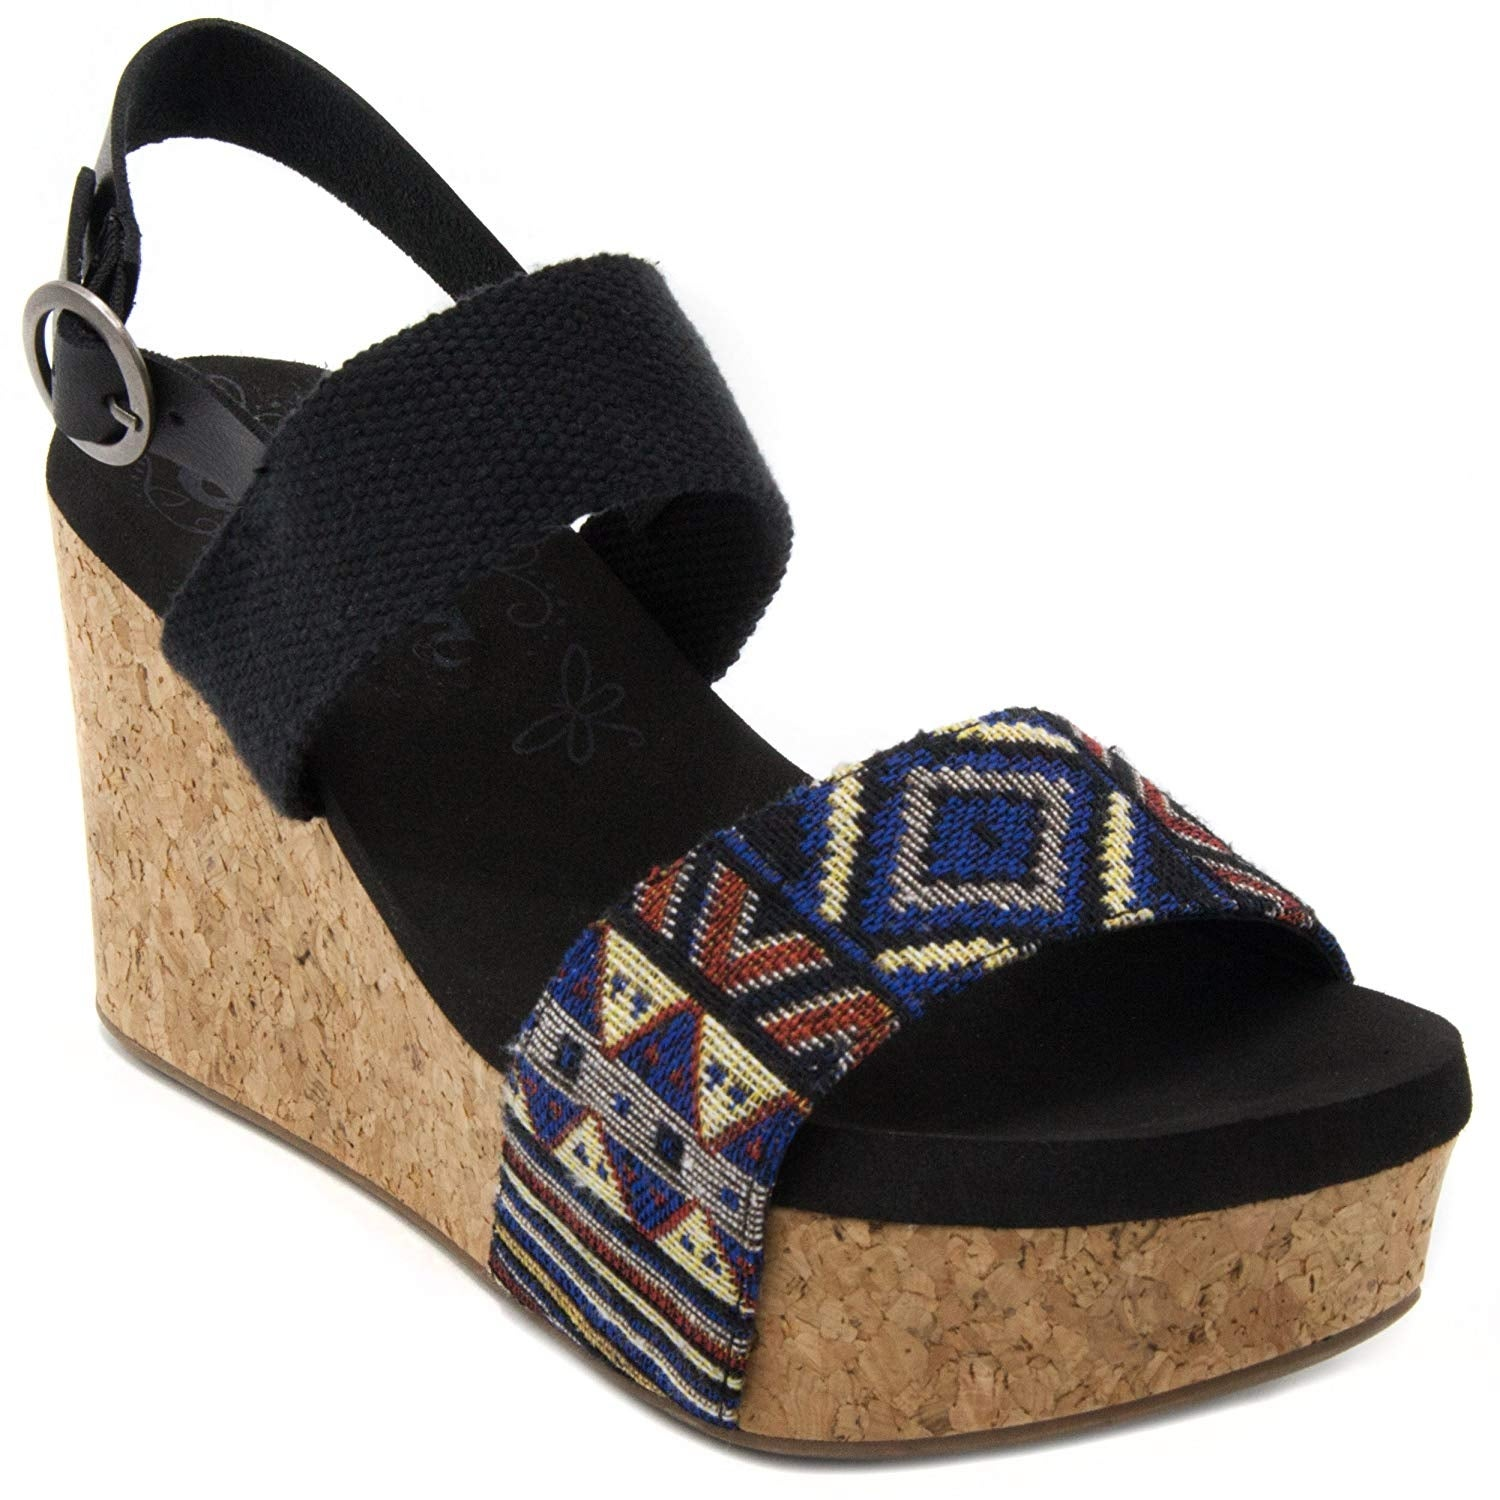 1be4401792 Sugar Women's Jinxy Slingback Cork Platform Wedge Sandal with Tribal Aztec  Pr..